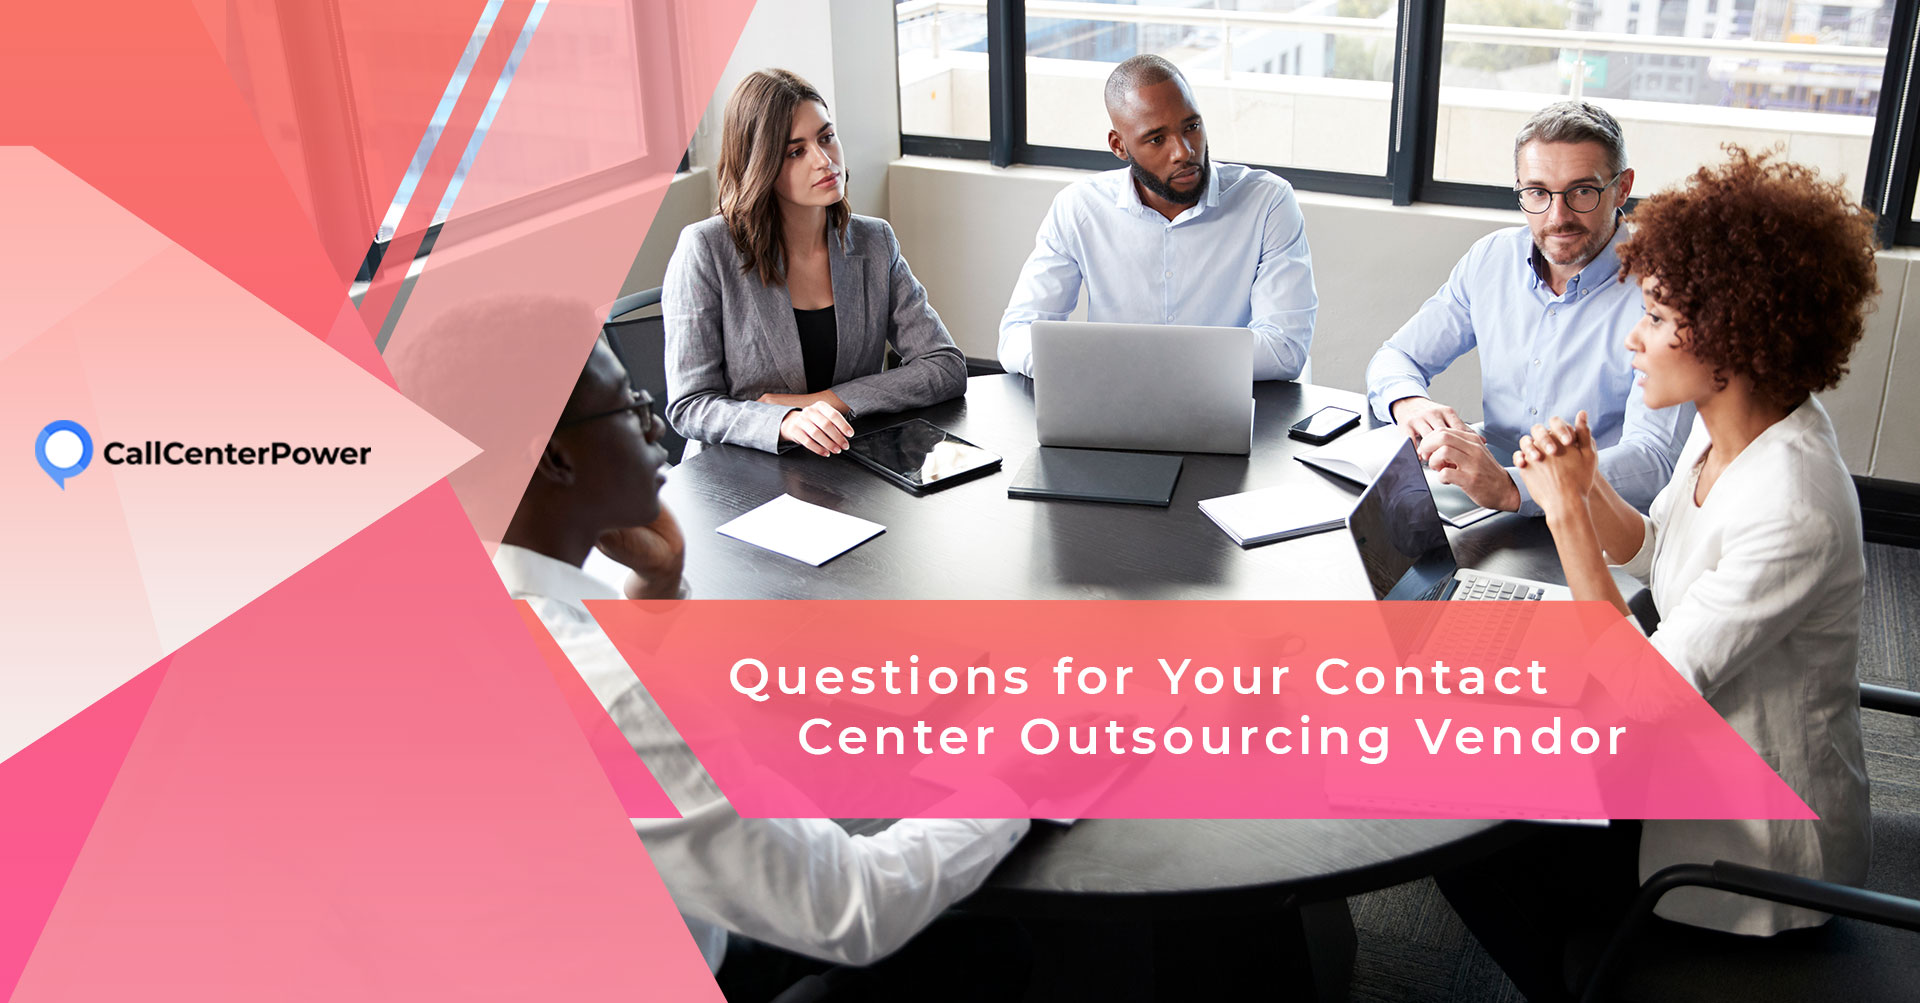 Questions for Your Contact Center Outsourcing Vendor